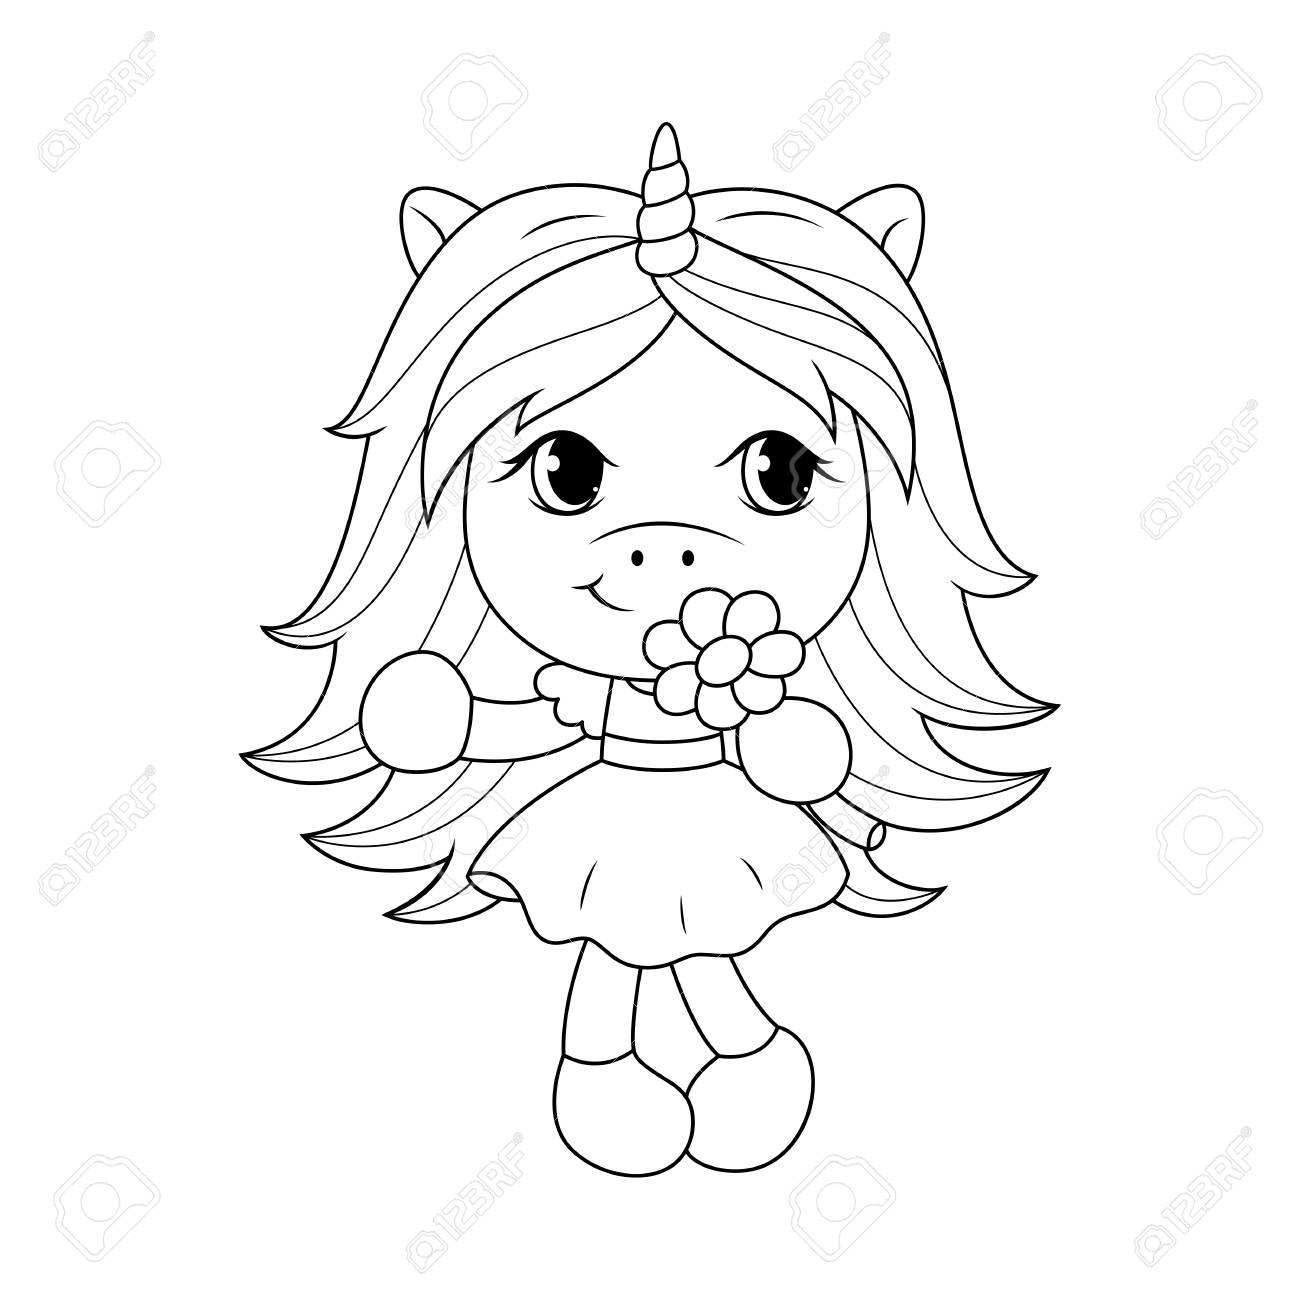 Cute Baby Unicorn Holding Flower Coloring Page For Girls Vector